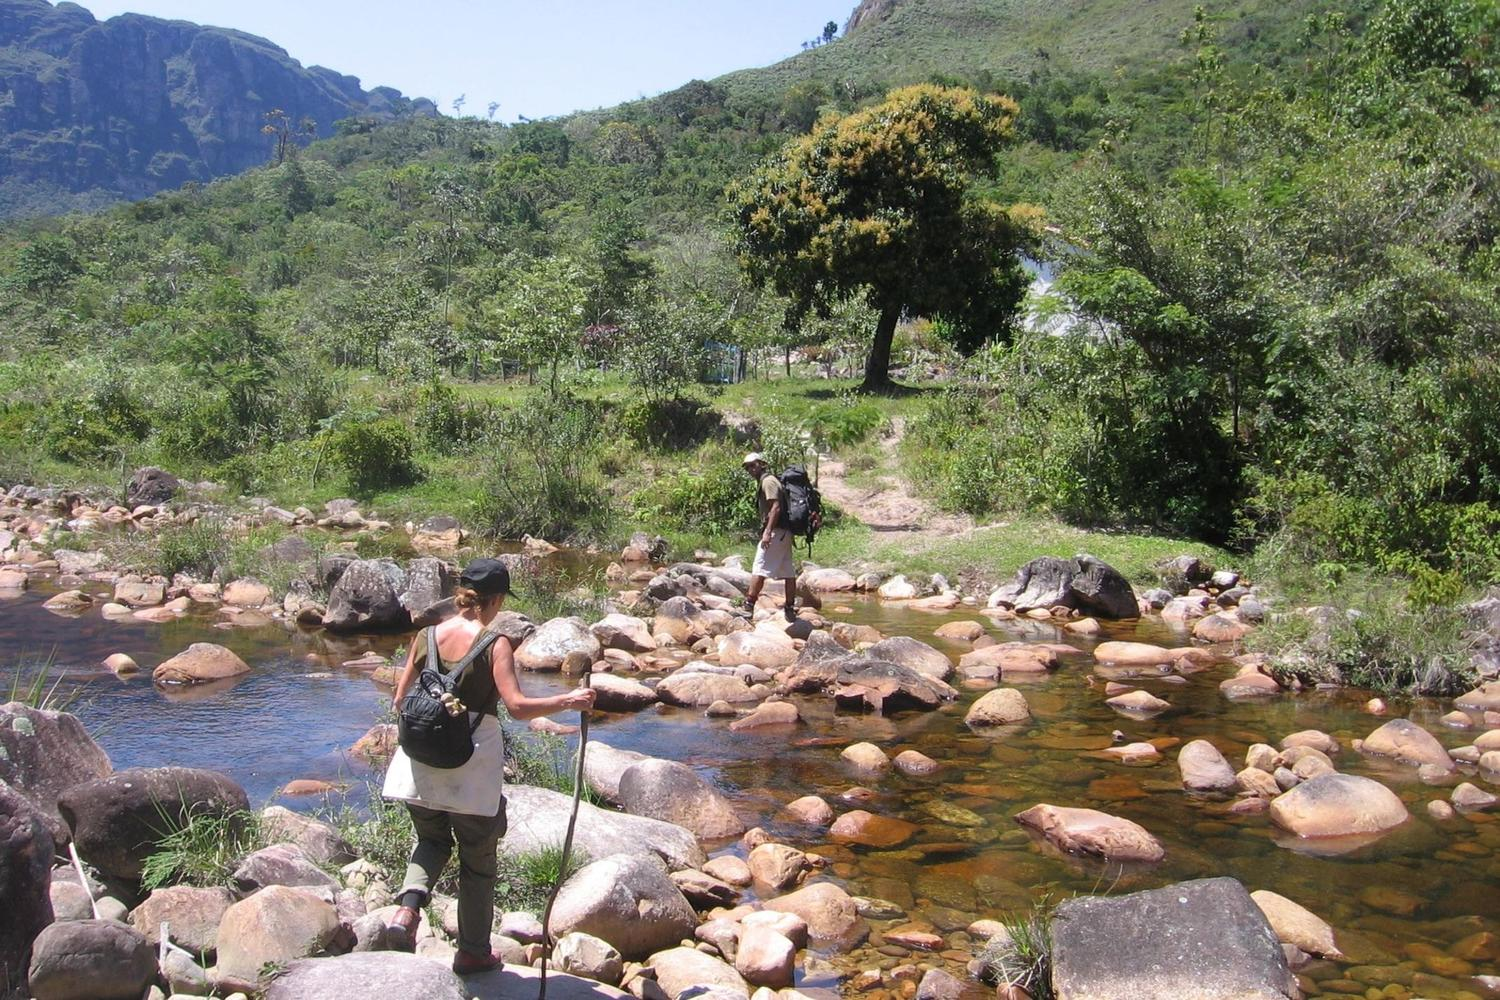 Photos from a riverbed high above the Pati Valley, Brazil